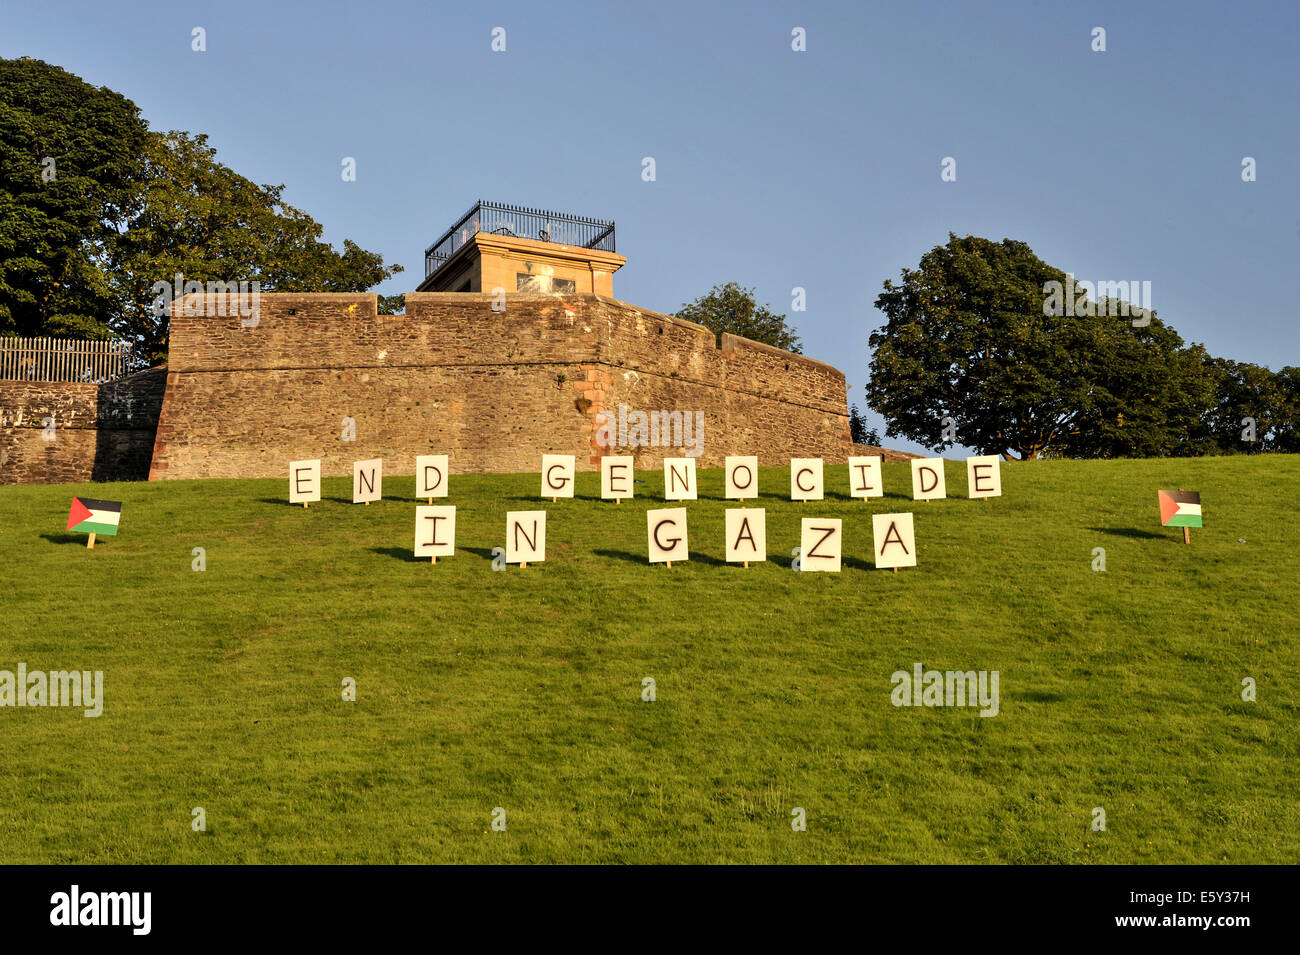 Placards on green outside of Walls of Derry, overlooking the Bogside, reads End Genocide in Gaza. Derry, Londonderry, - Stock Image